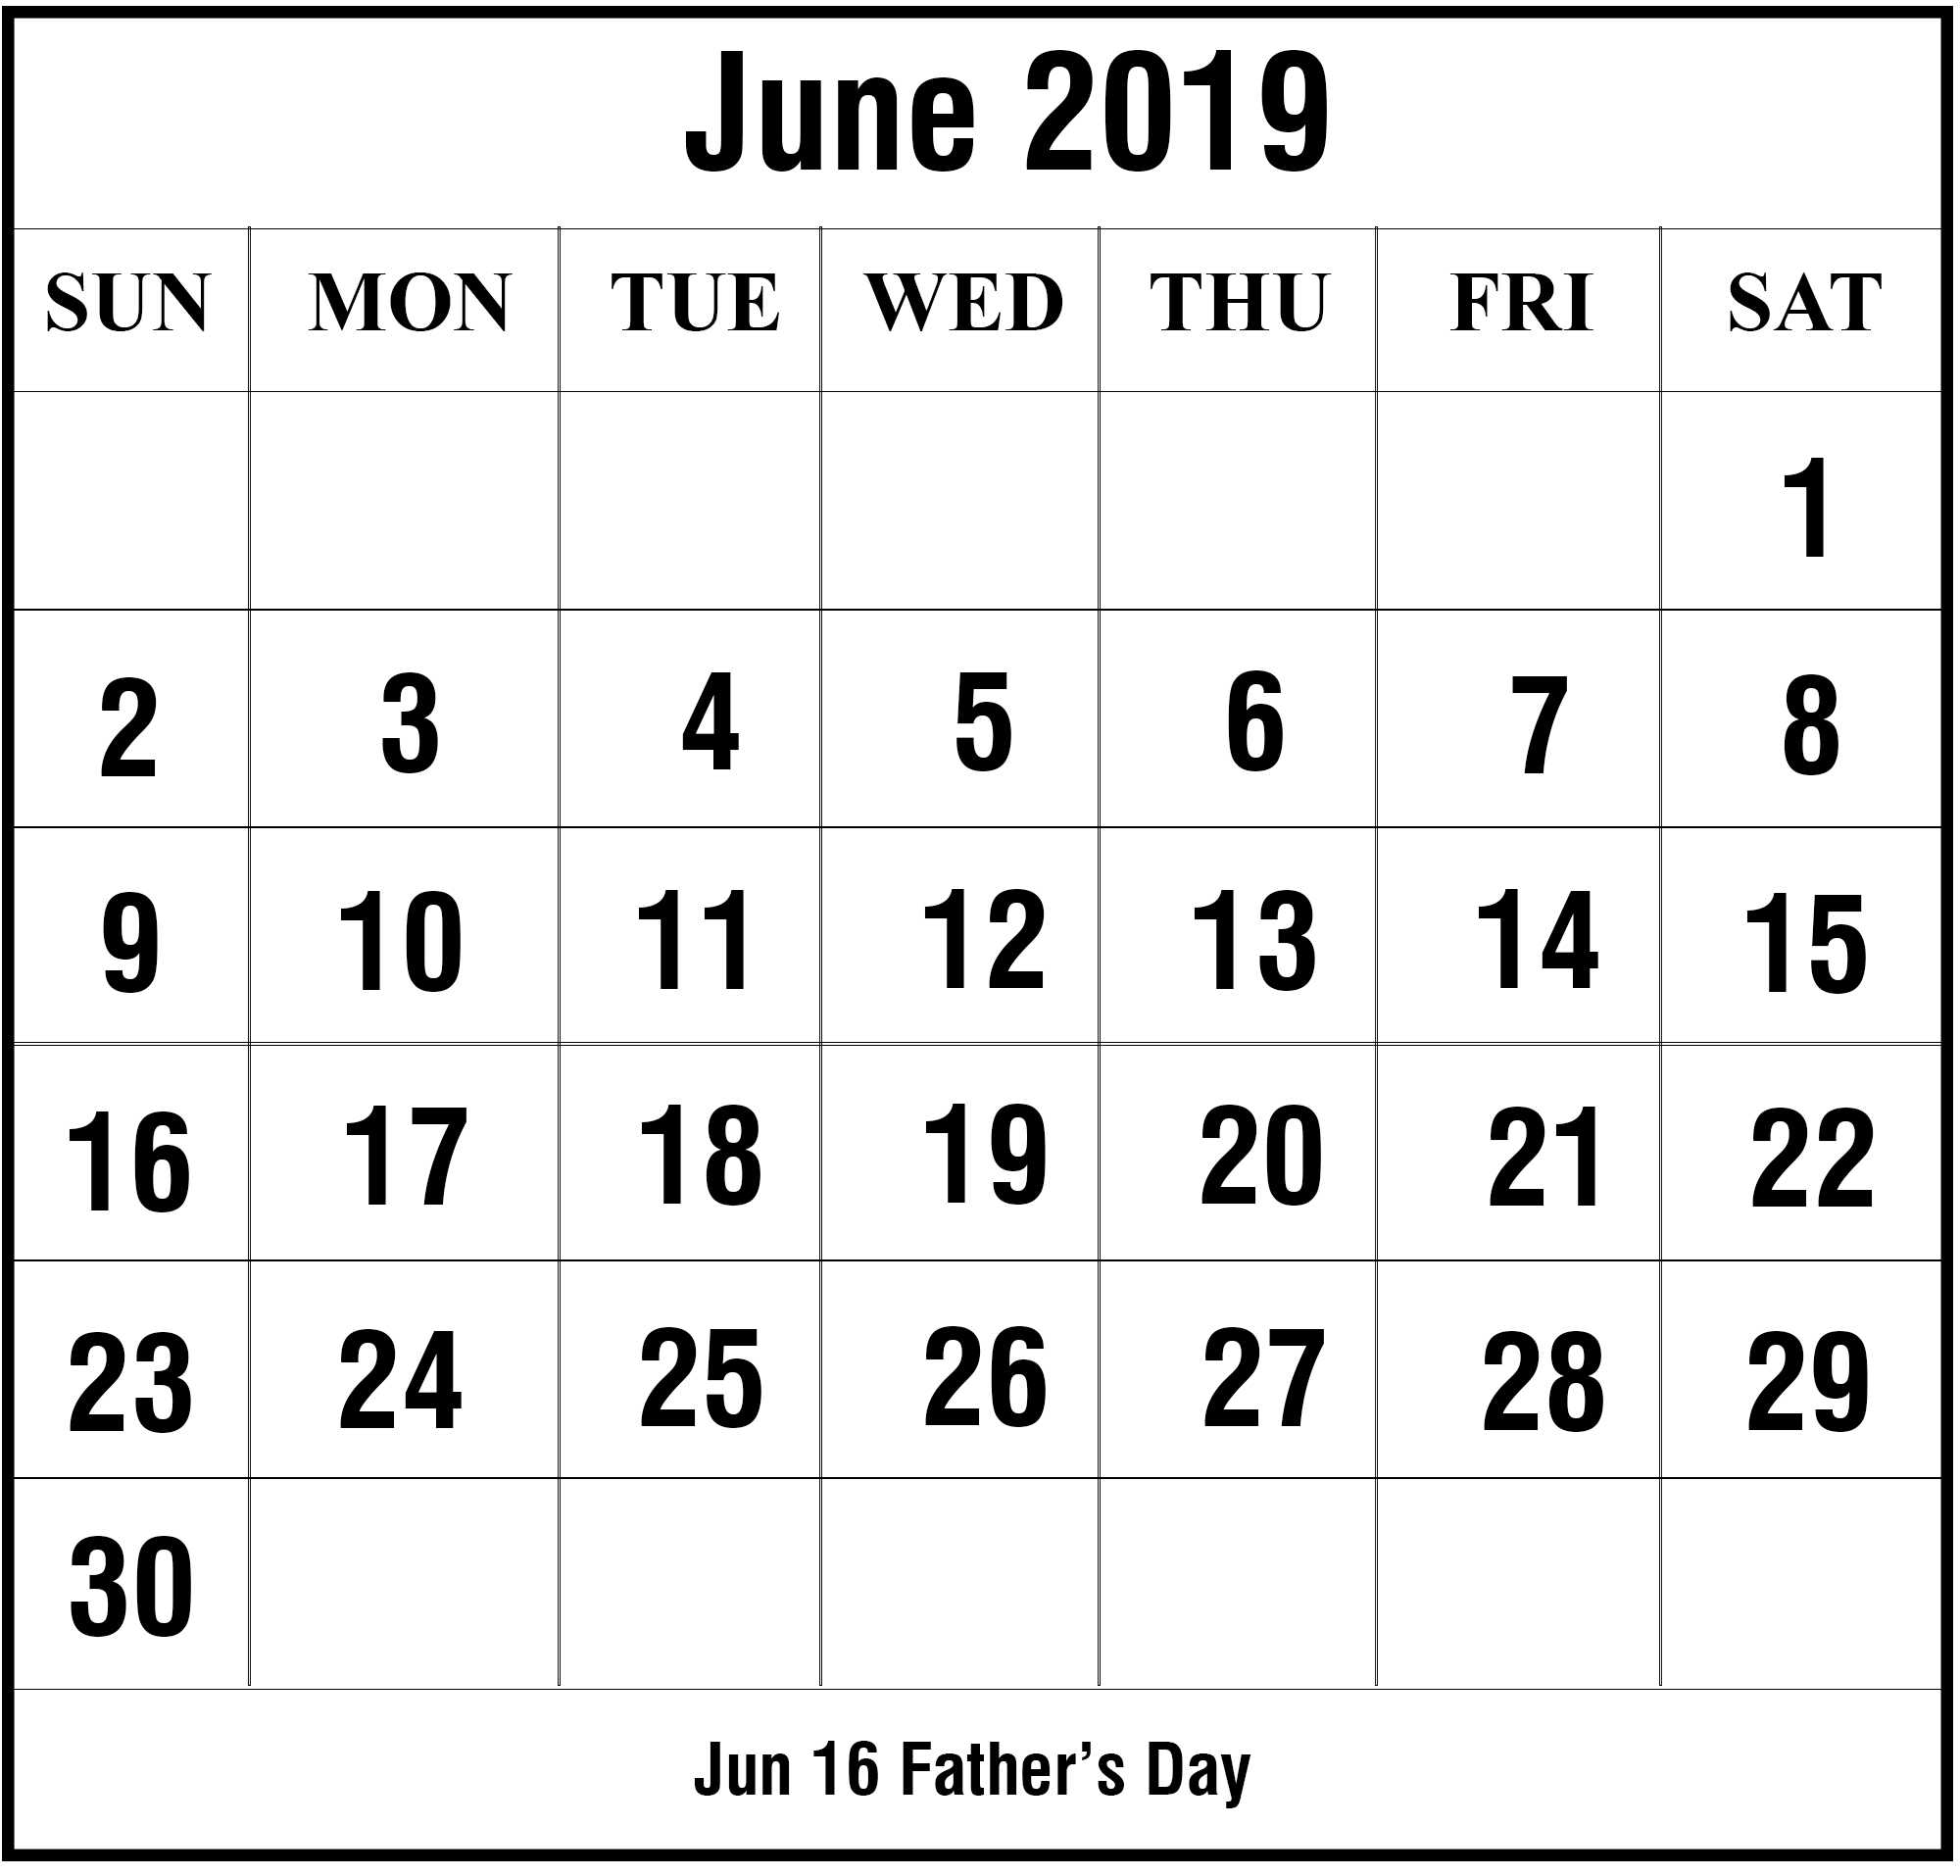 Editable June 2019 Calendar Printable Template With Holidays with regard to Free At A Glance Editable Calendar July 2019-June 2020